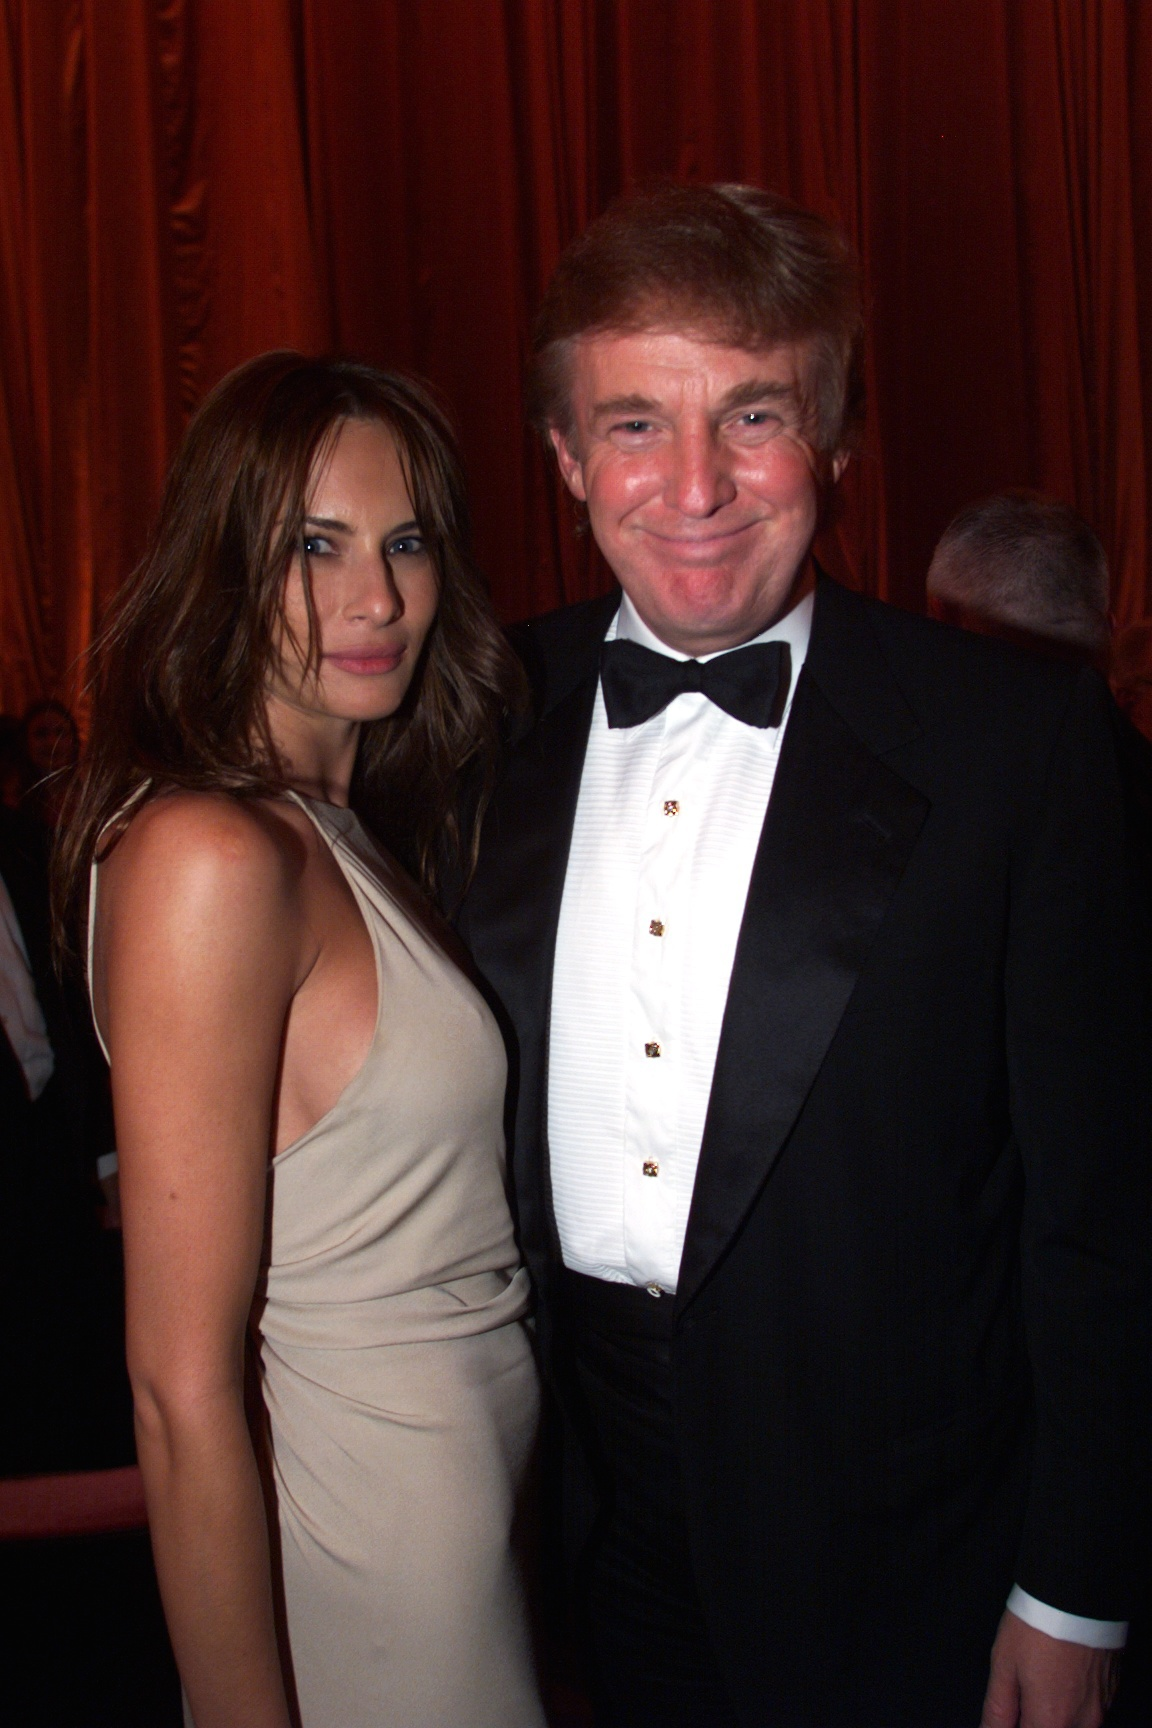 Donald Trump & girlfriend during Grand Re-opening Gala of the Radio City Music Hall at Radio City Music Hall in New York City, New York, United States. (Photo by KMazur/WireImage)